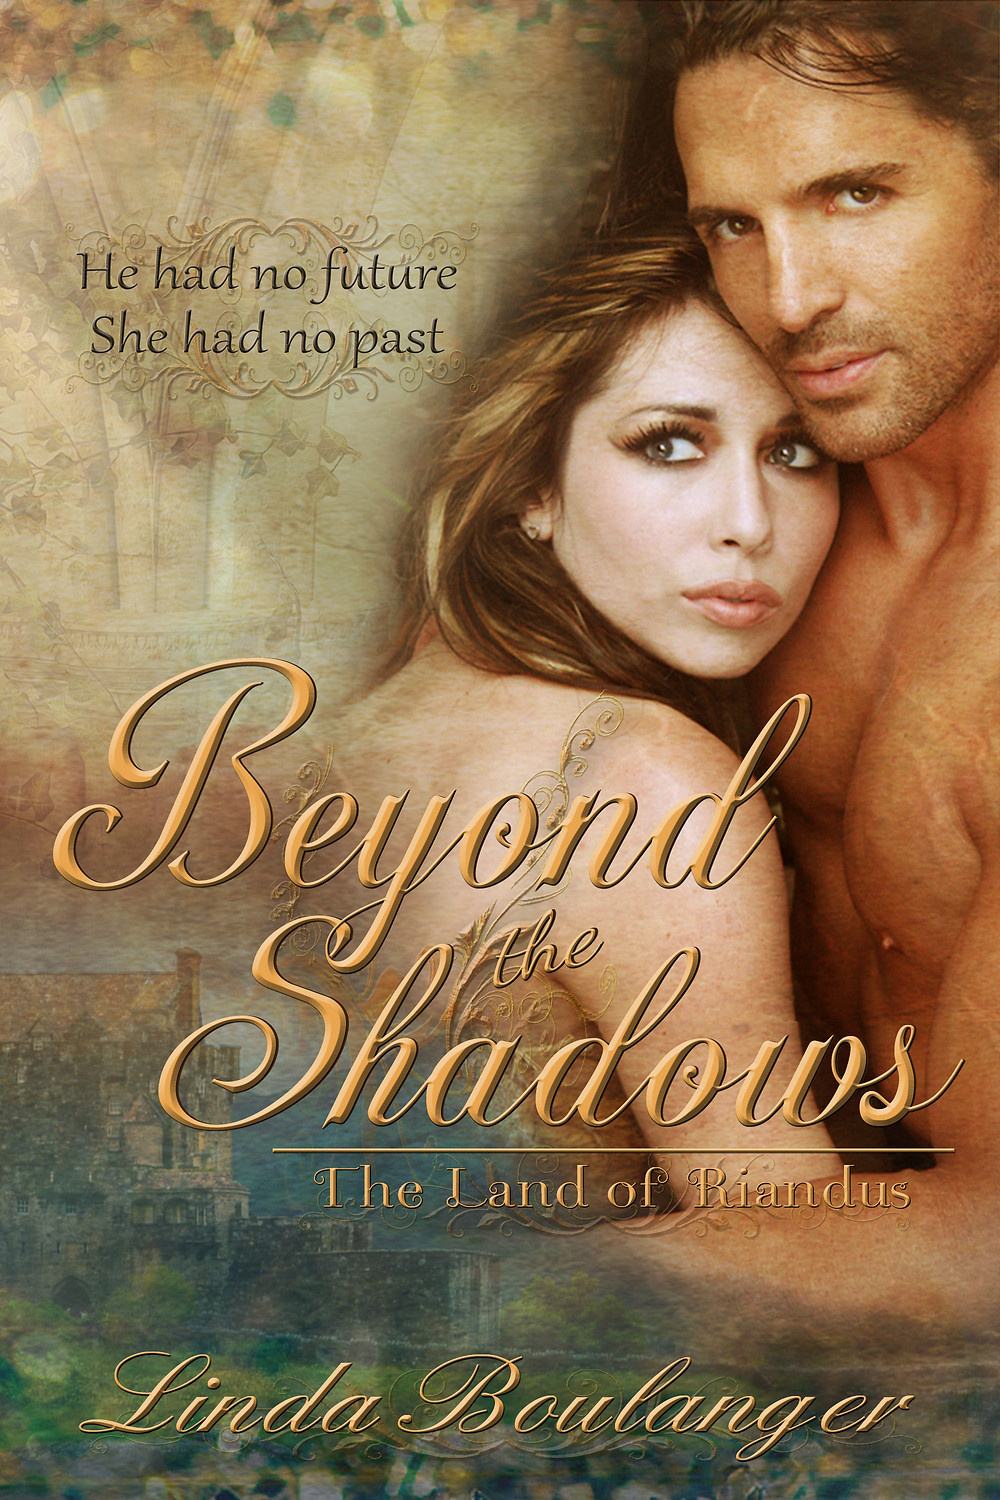 Beyond the Shadows by Linda Boulanger